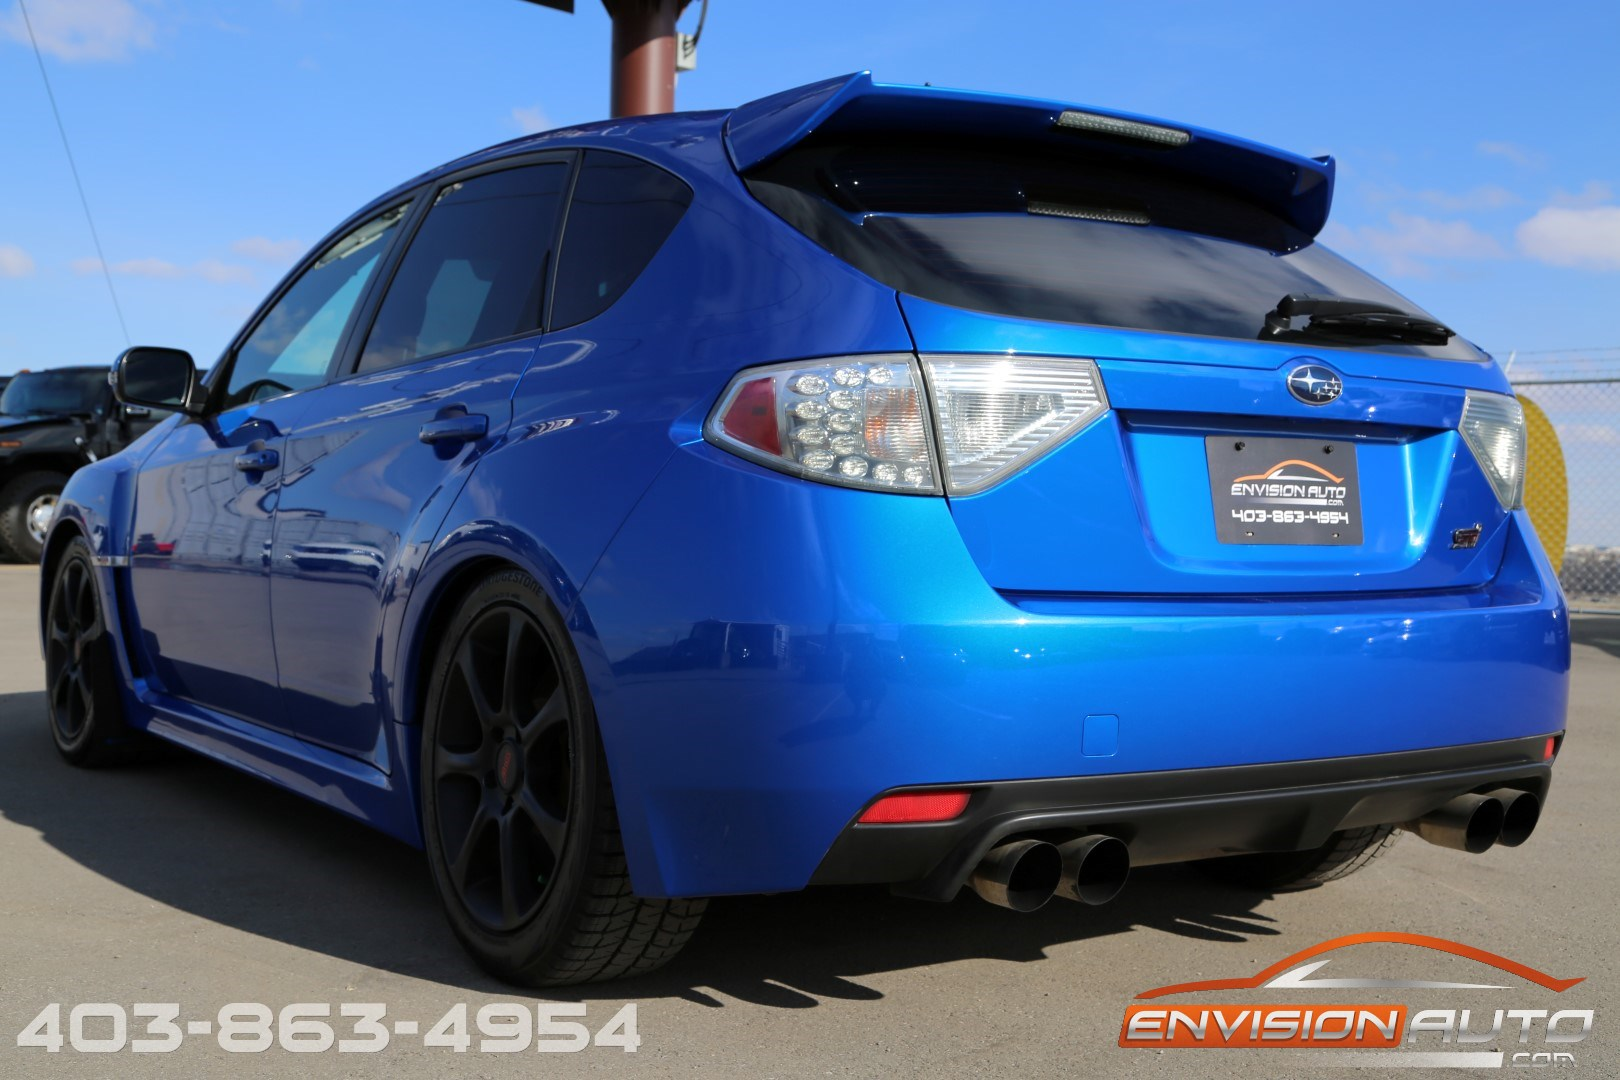 2010 subaru impreza wrx sti custom built engine only 90kms best diagram for cars. Black Bedroom Furniture Sets. Home Design Ideas